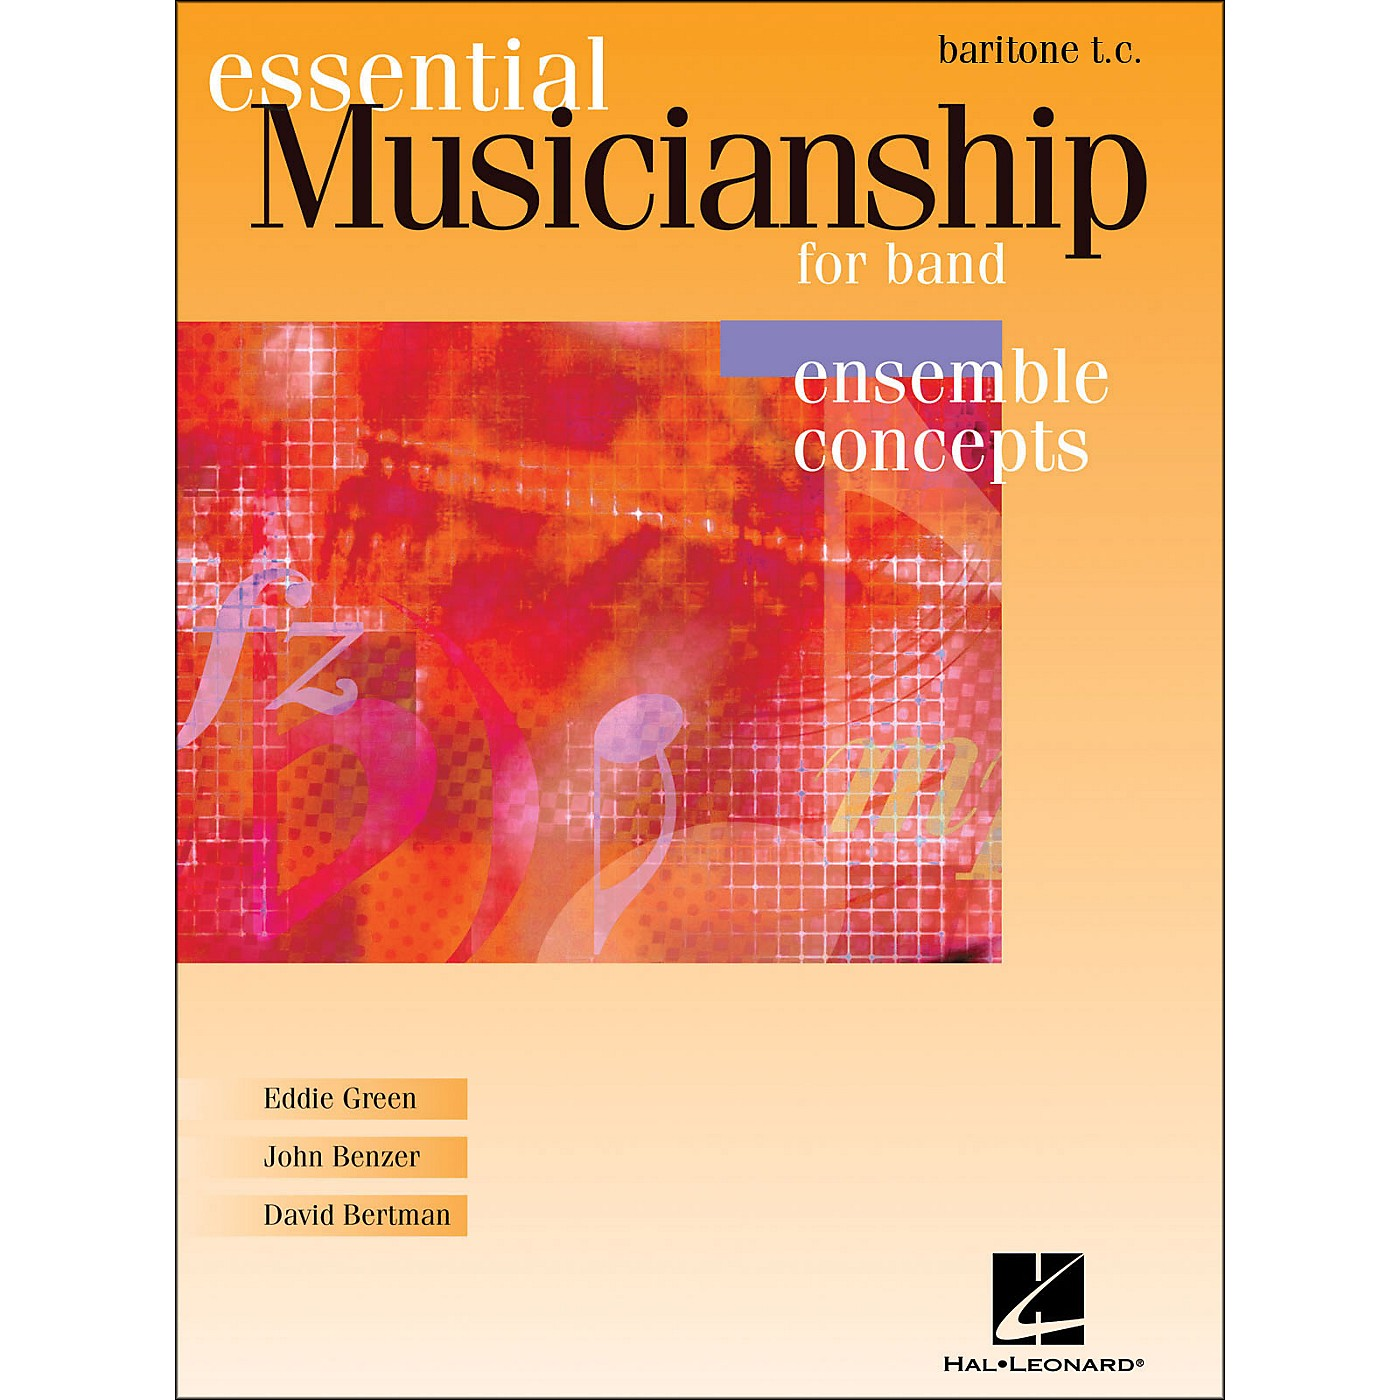 Hal Leonard Essential Musicianship for Band - Ensemble Concepts Baritone TC thumbnail